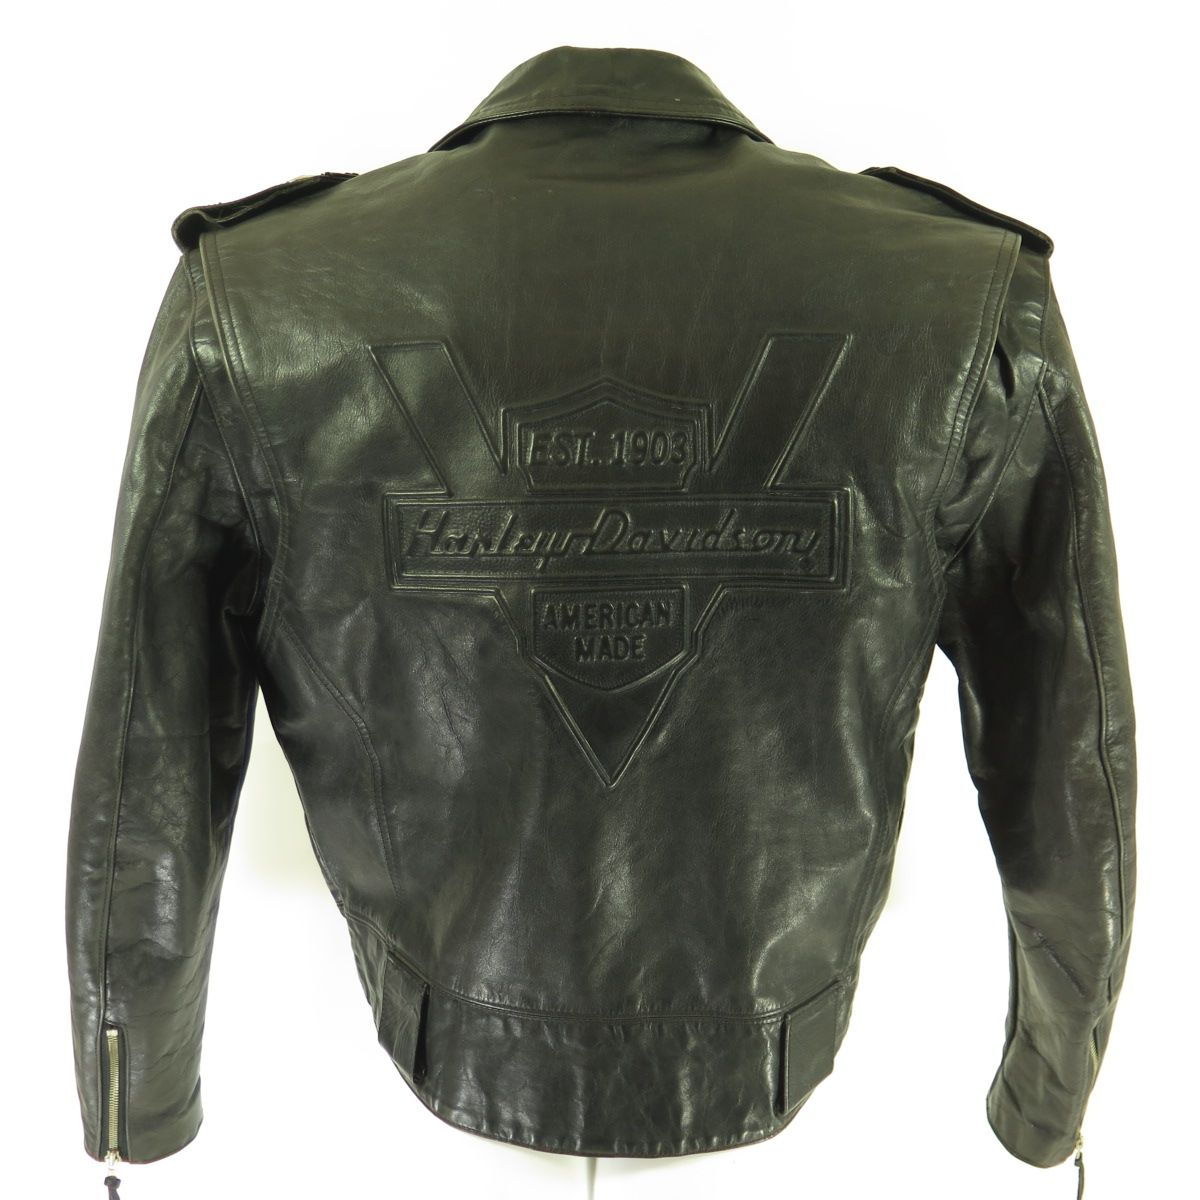 Details Made In United States By Harley Davidson Black Color Leather Material 2 Zip Chest P Leather Jacket Men Harley Davidson Leather Jackets Leather Jacket [ 1200 x 1200 Pixel ]